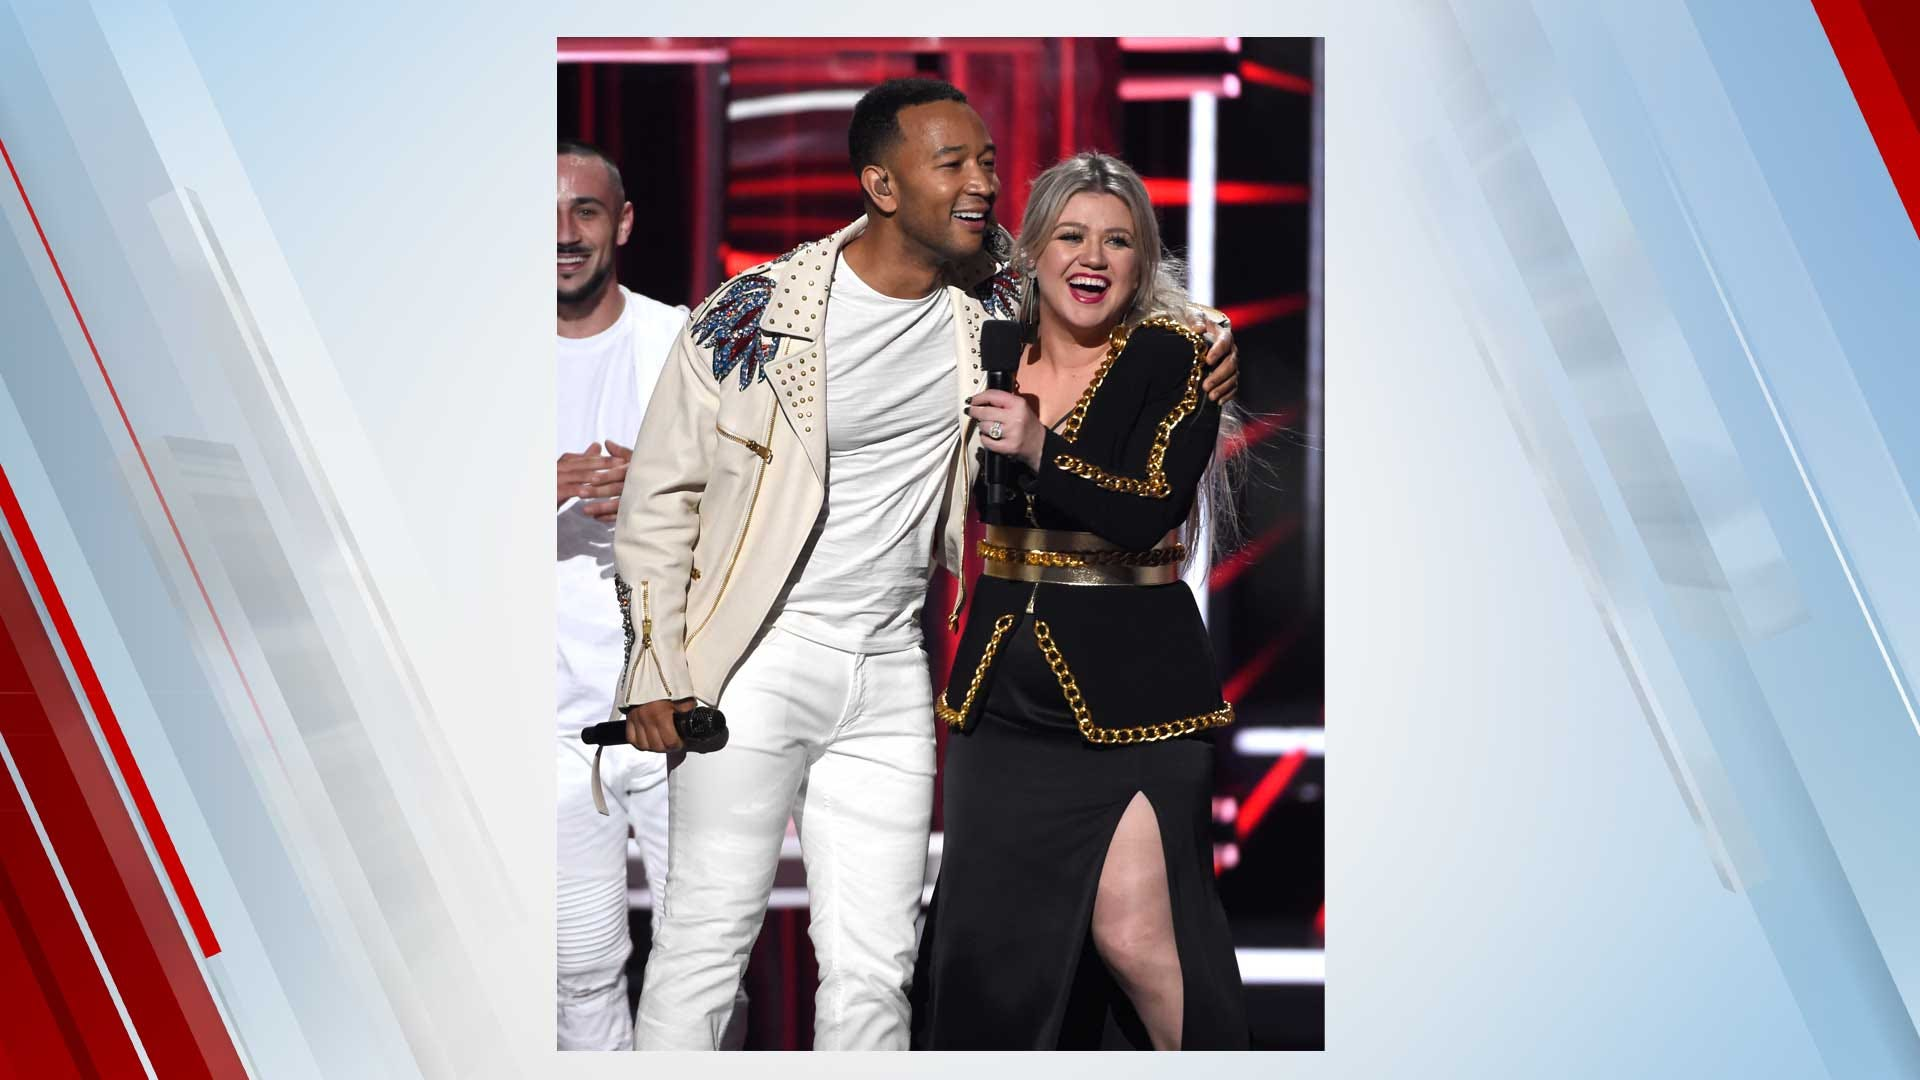 Kelly Clarkson Jokes That She & John Legend 'Ruined Christmas' With Their 'Baby, It's Cold Outside' Remake